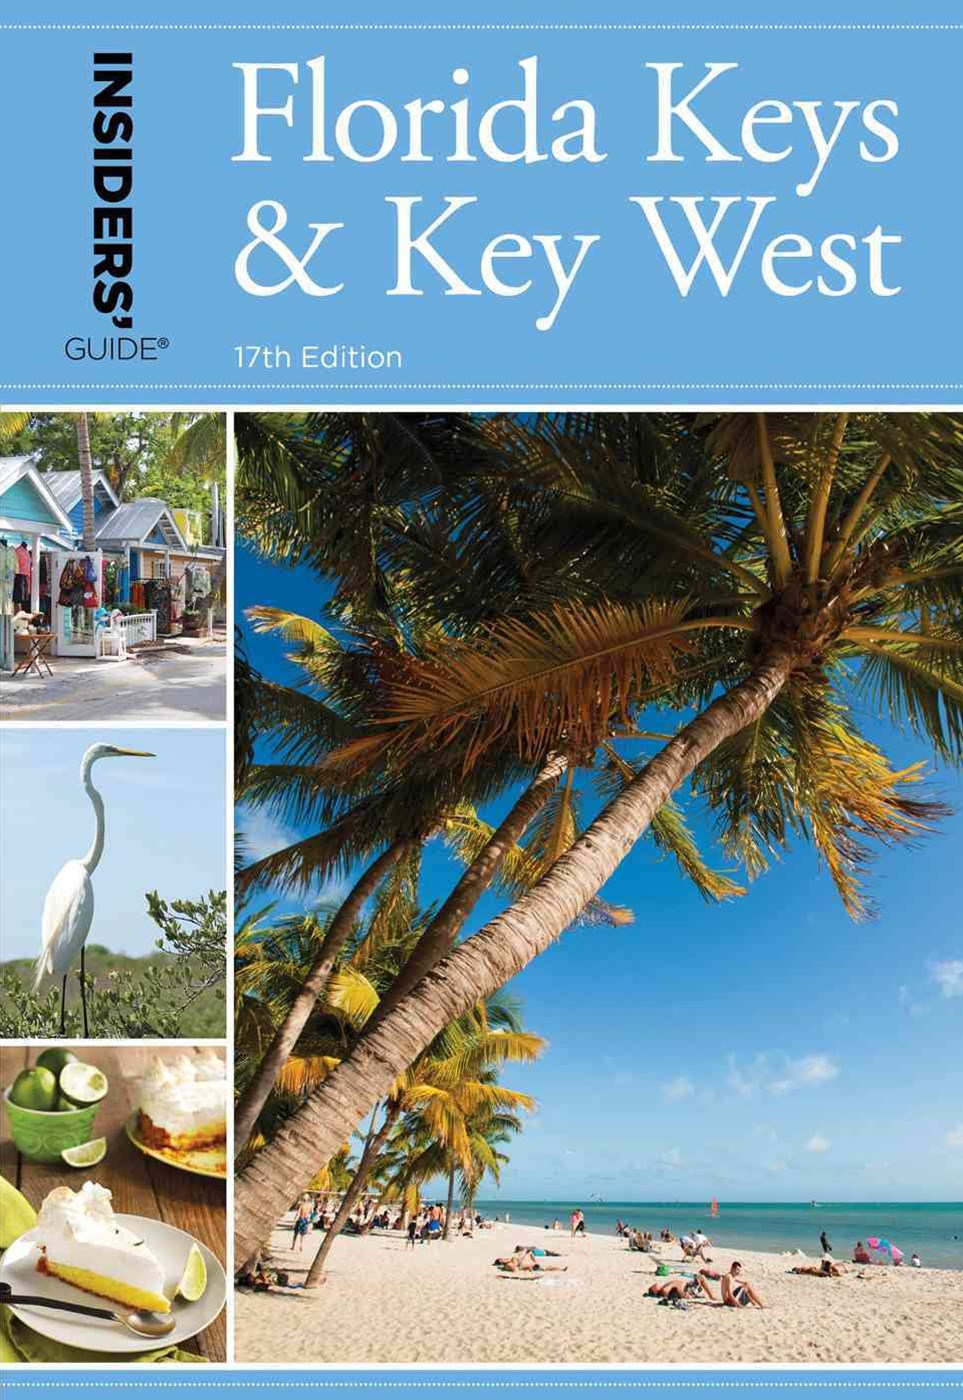 Insiders' Guide to Florida Keys & Key West